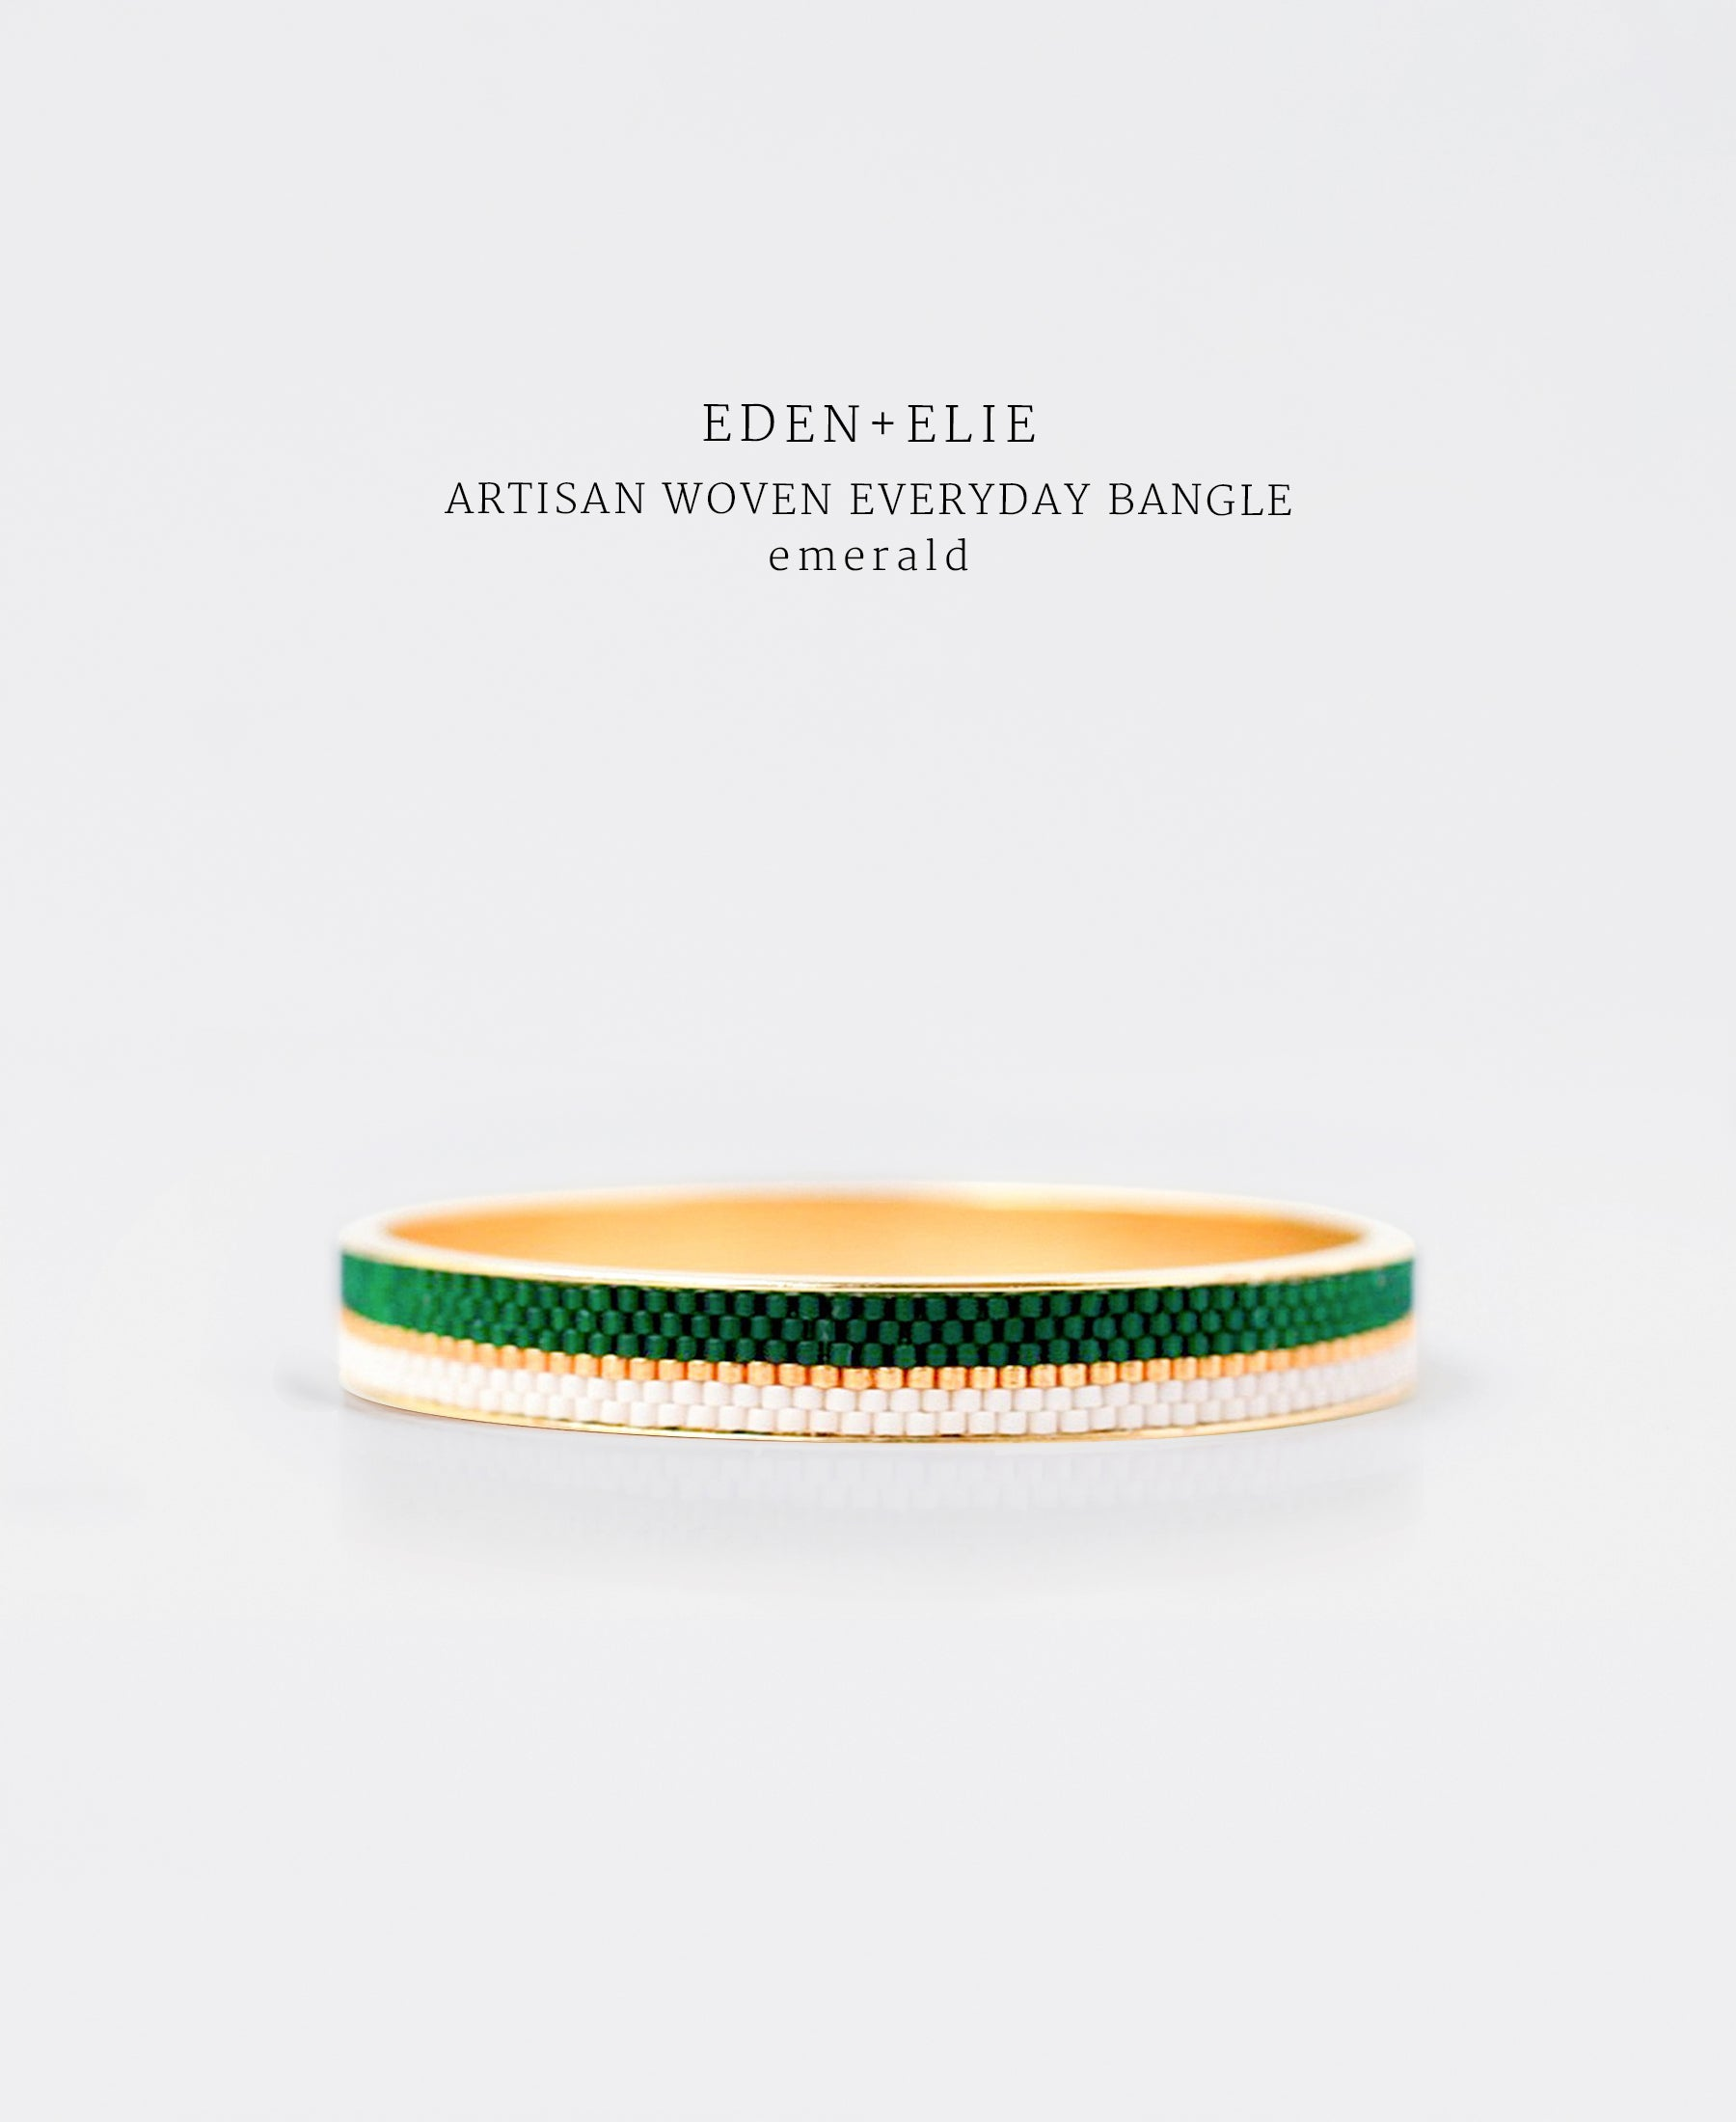 EDEN + ELIE gold plated jewelry Everyday gold narrow bangle - emerald green